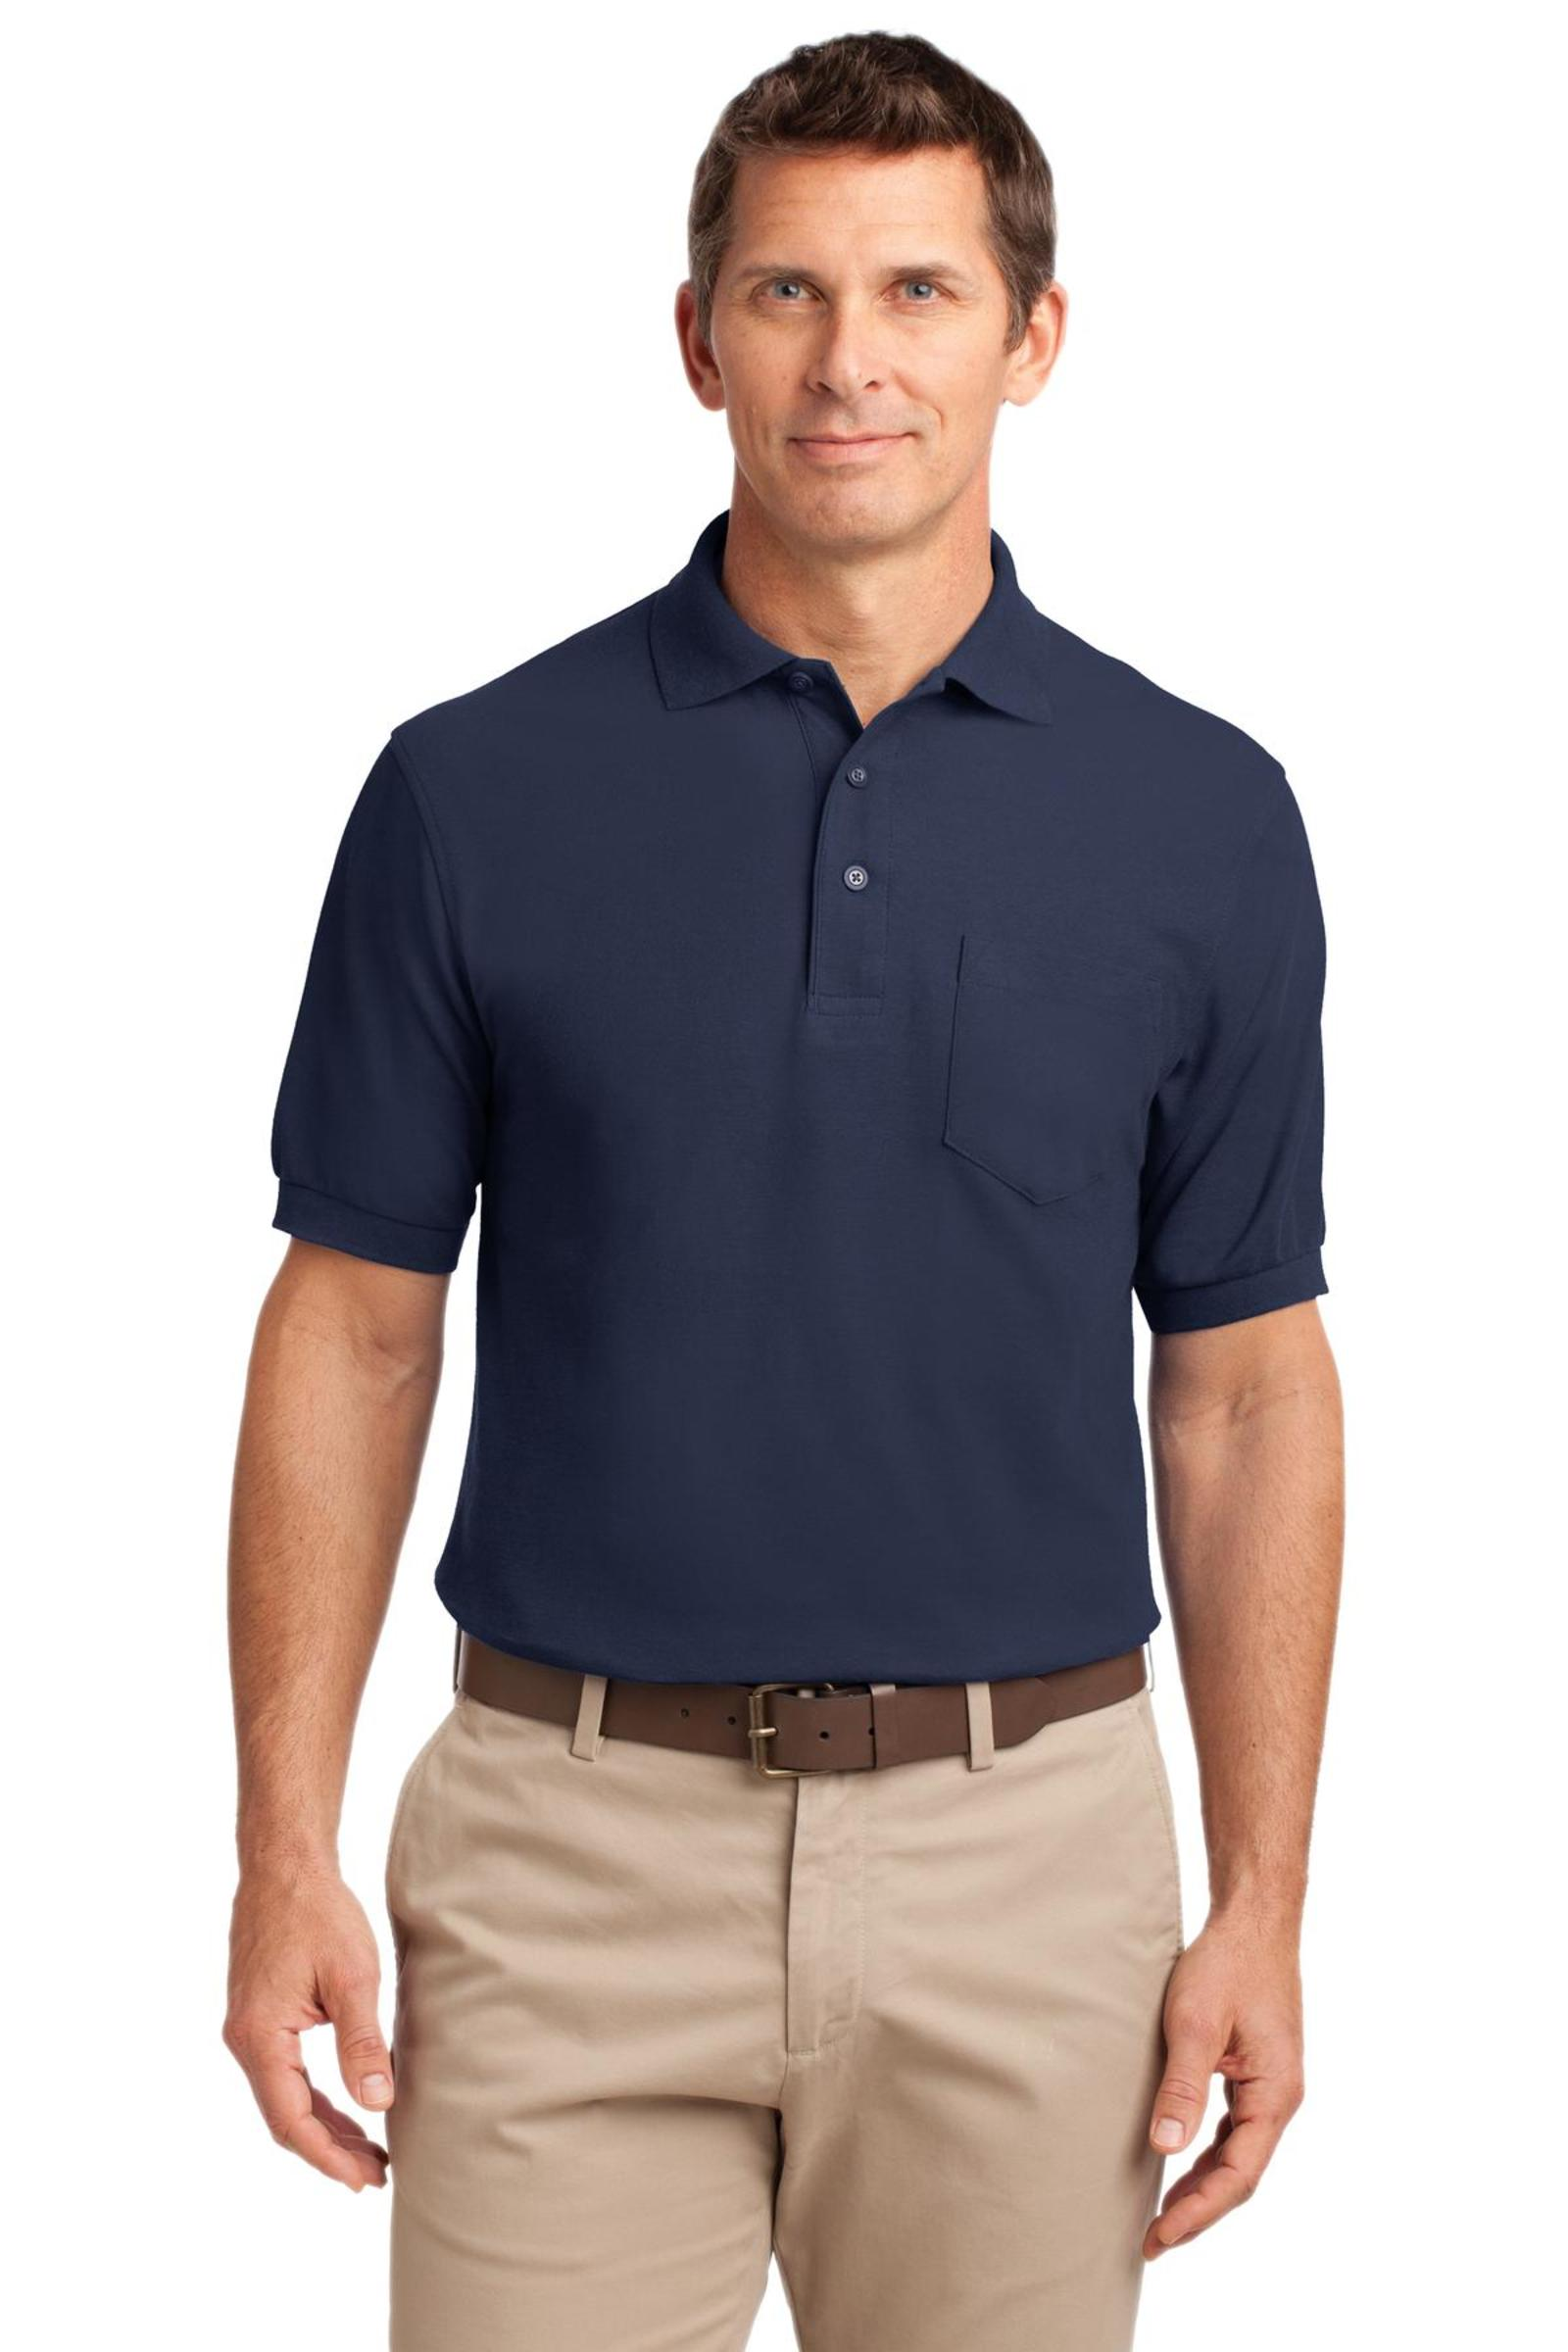 Port Authority Embroidered Men's Tall Silk Touch Pique Pocket Polo